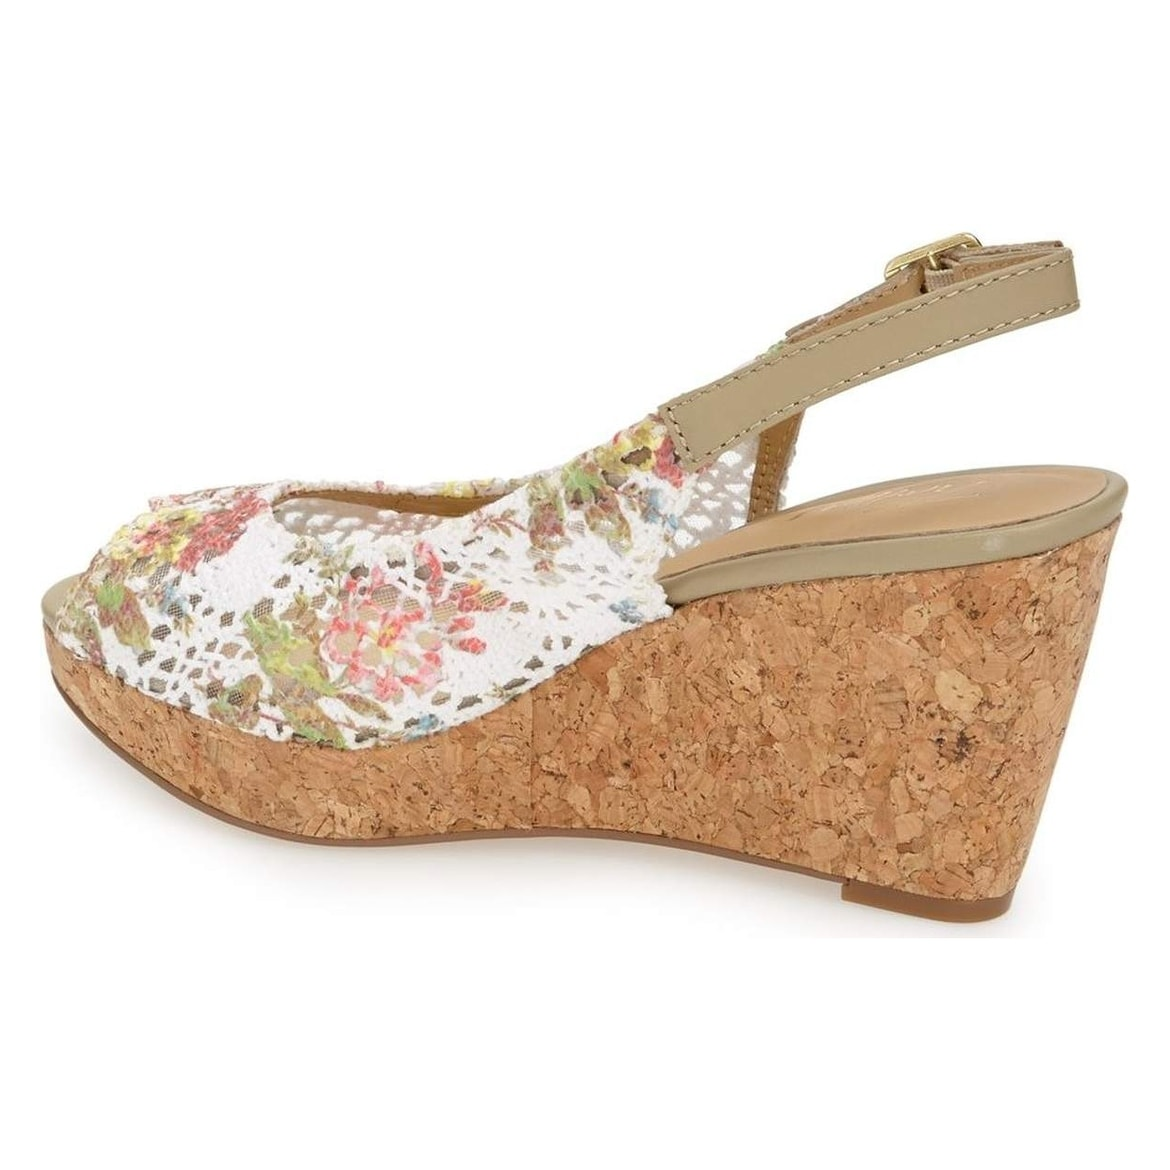 Shop Trotters White Shoes Slingback 75n Floral Wedges Leather Heels